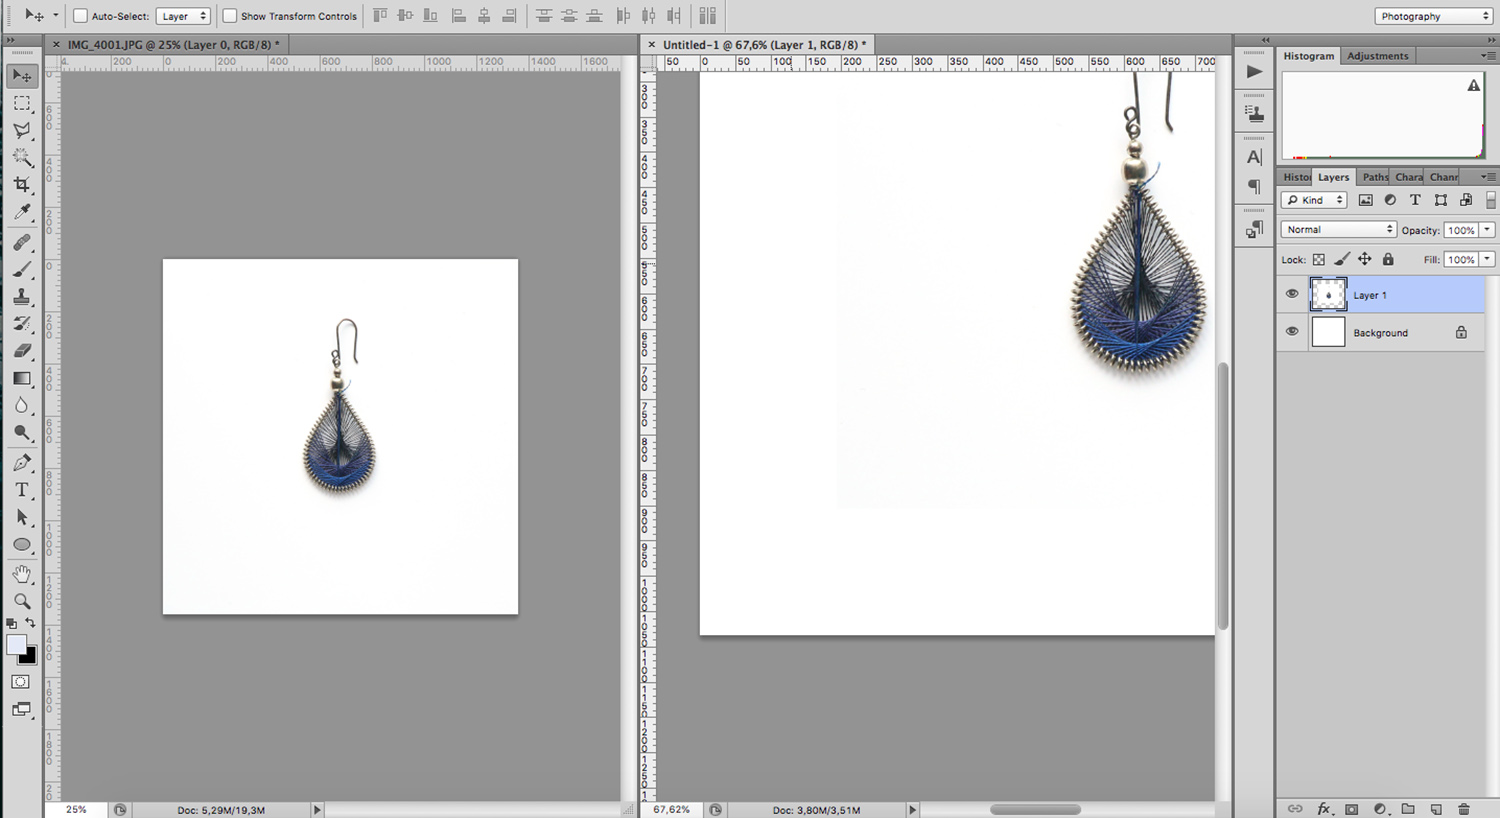 Photoshop tools to edit a white background